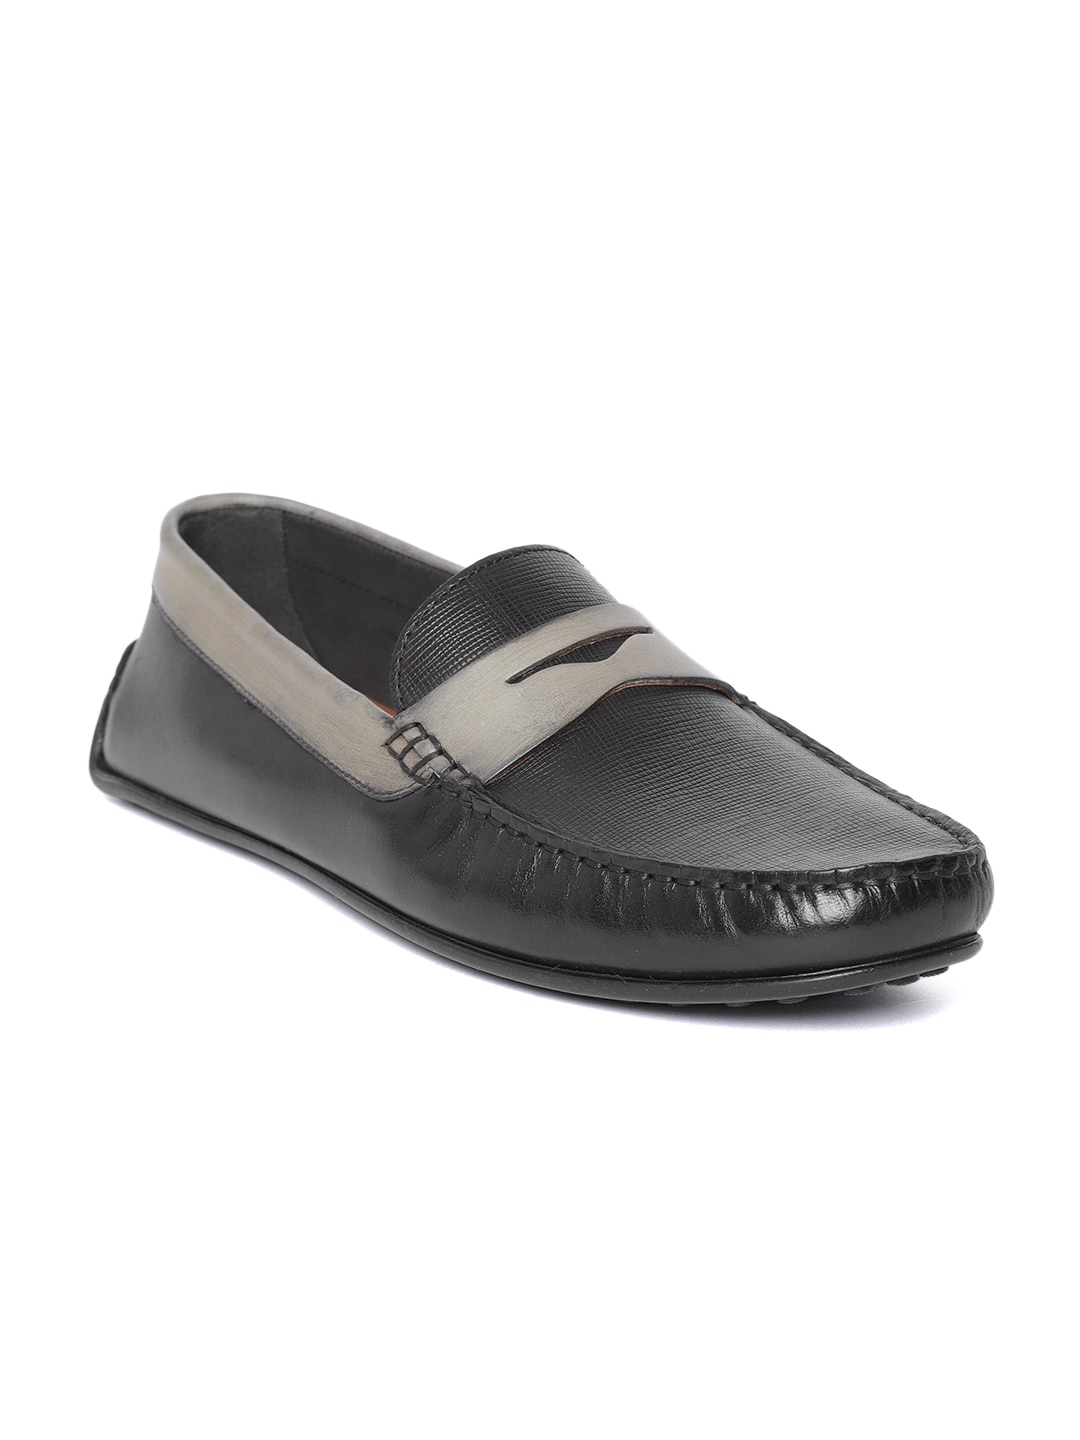 92315161af5 Penny Loafers - Buy Penny Loafers online in India